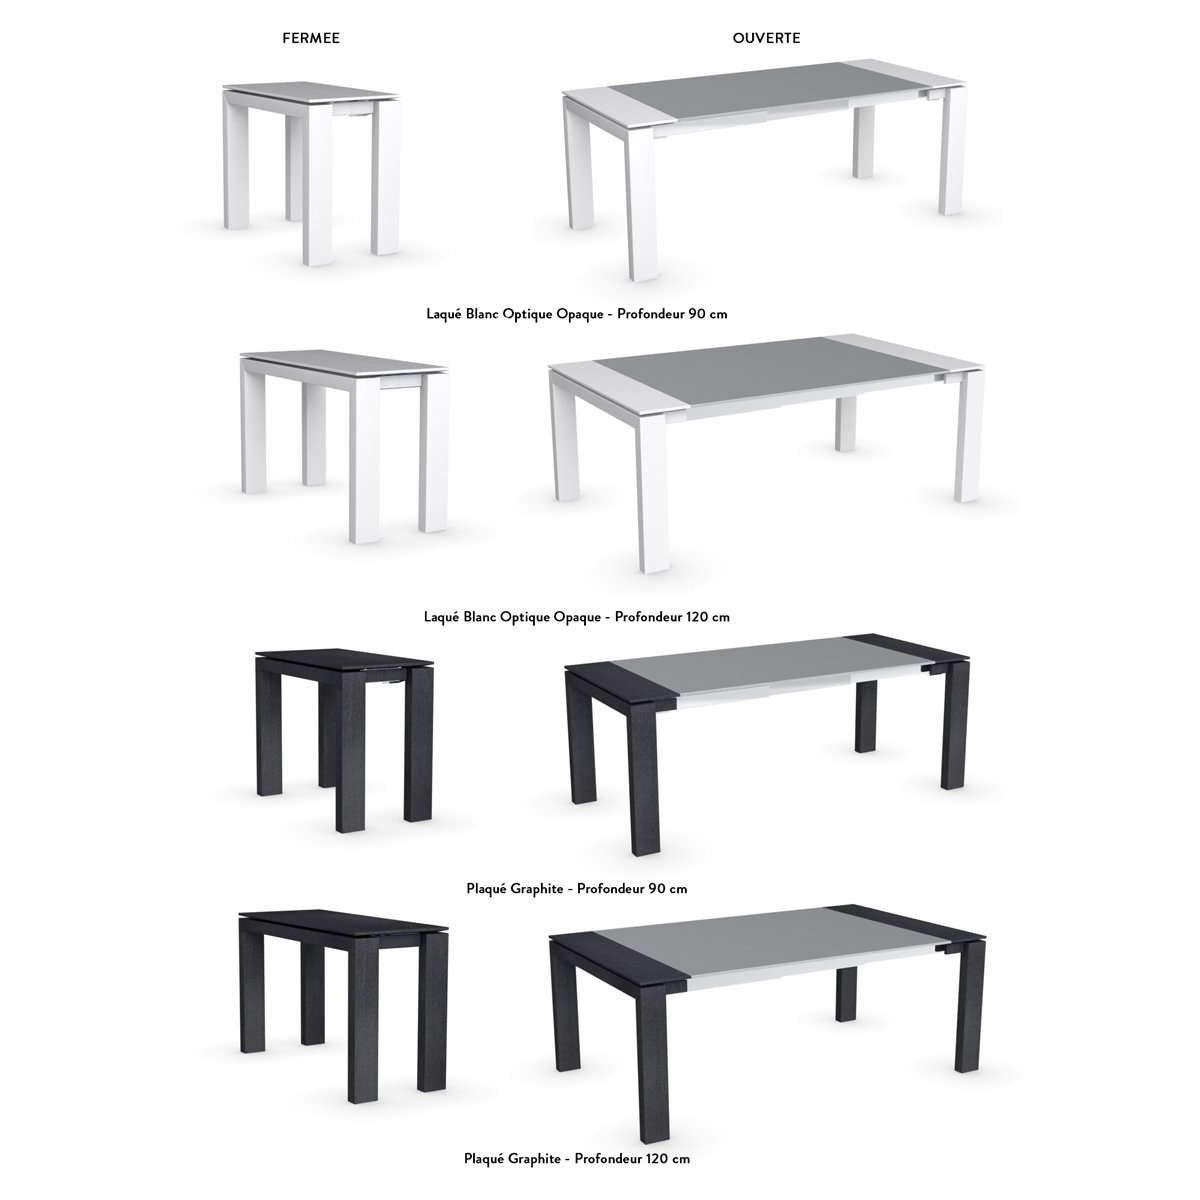 Luxe table ronde salle a manger extensible table de for Table salle a manger console extensible